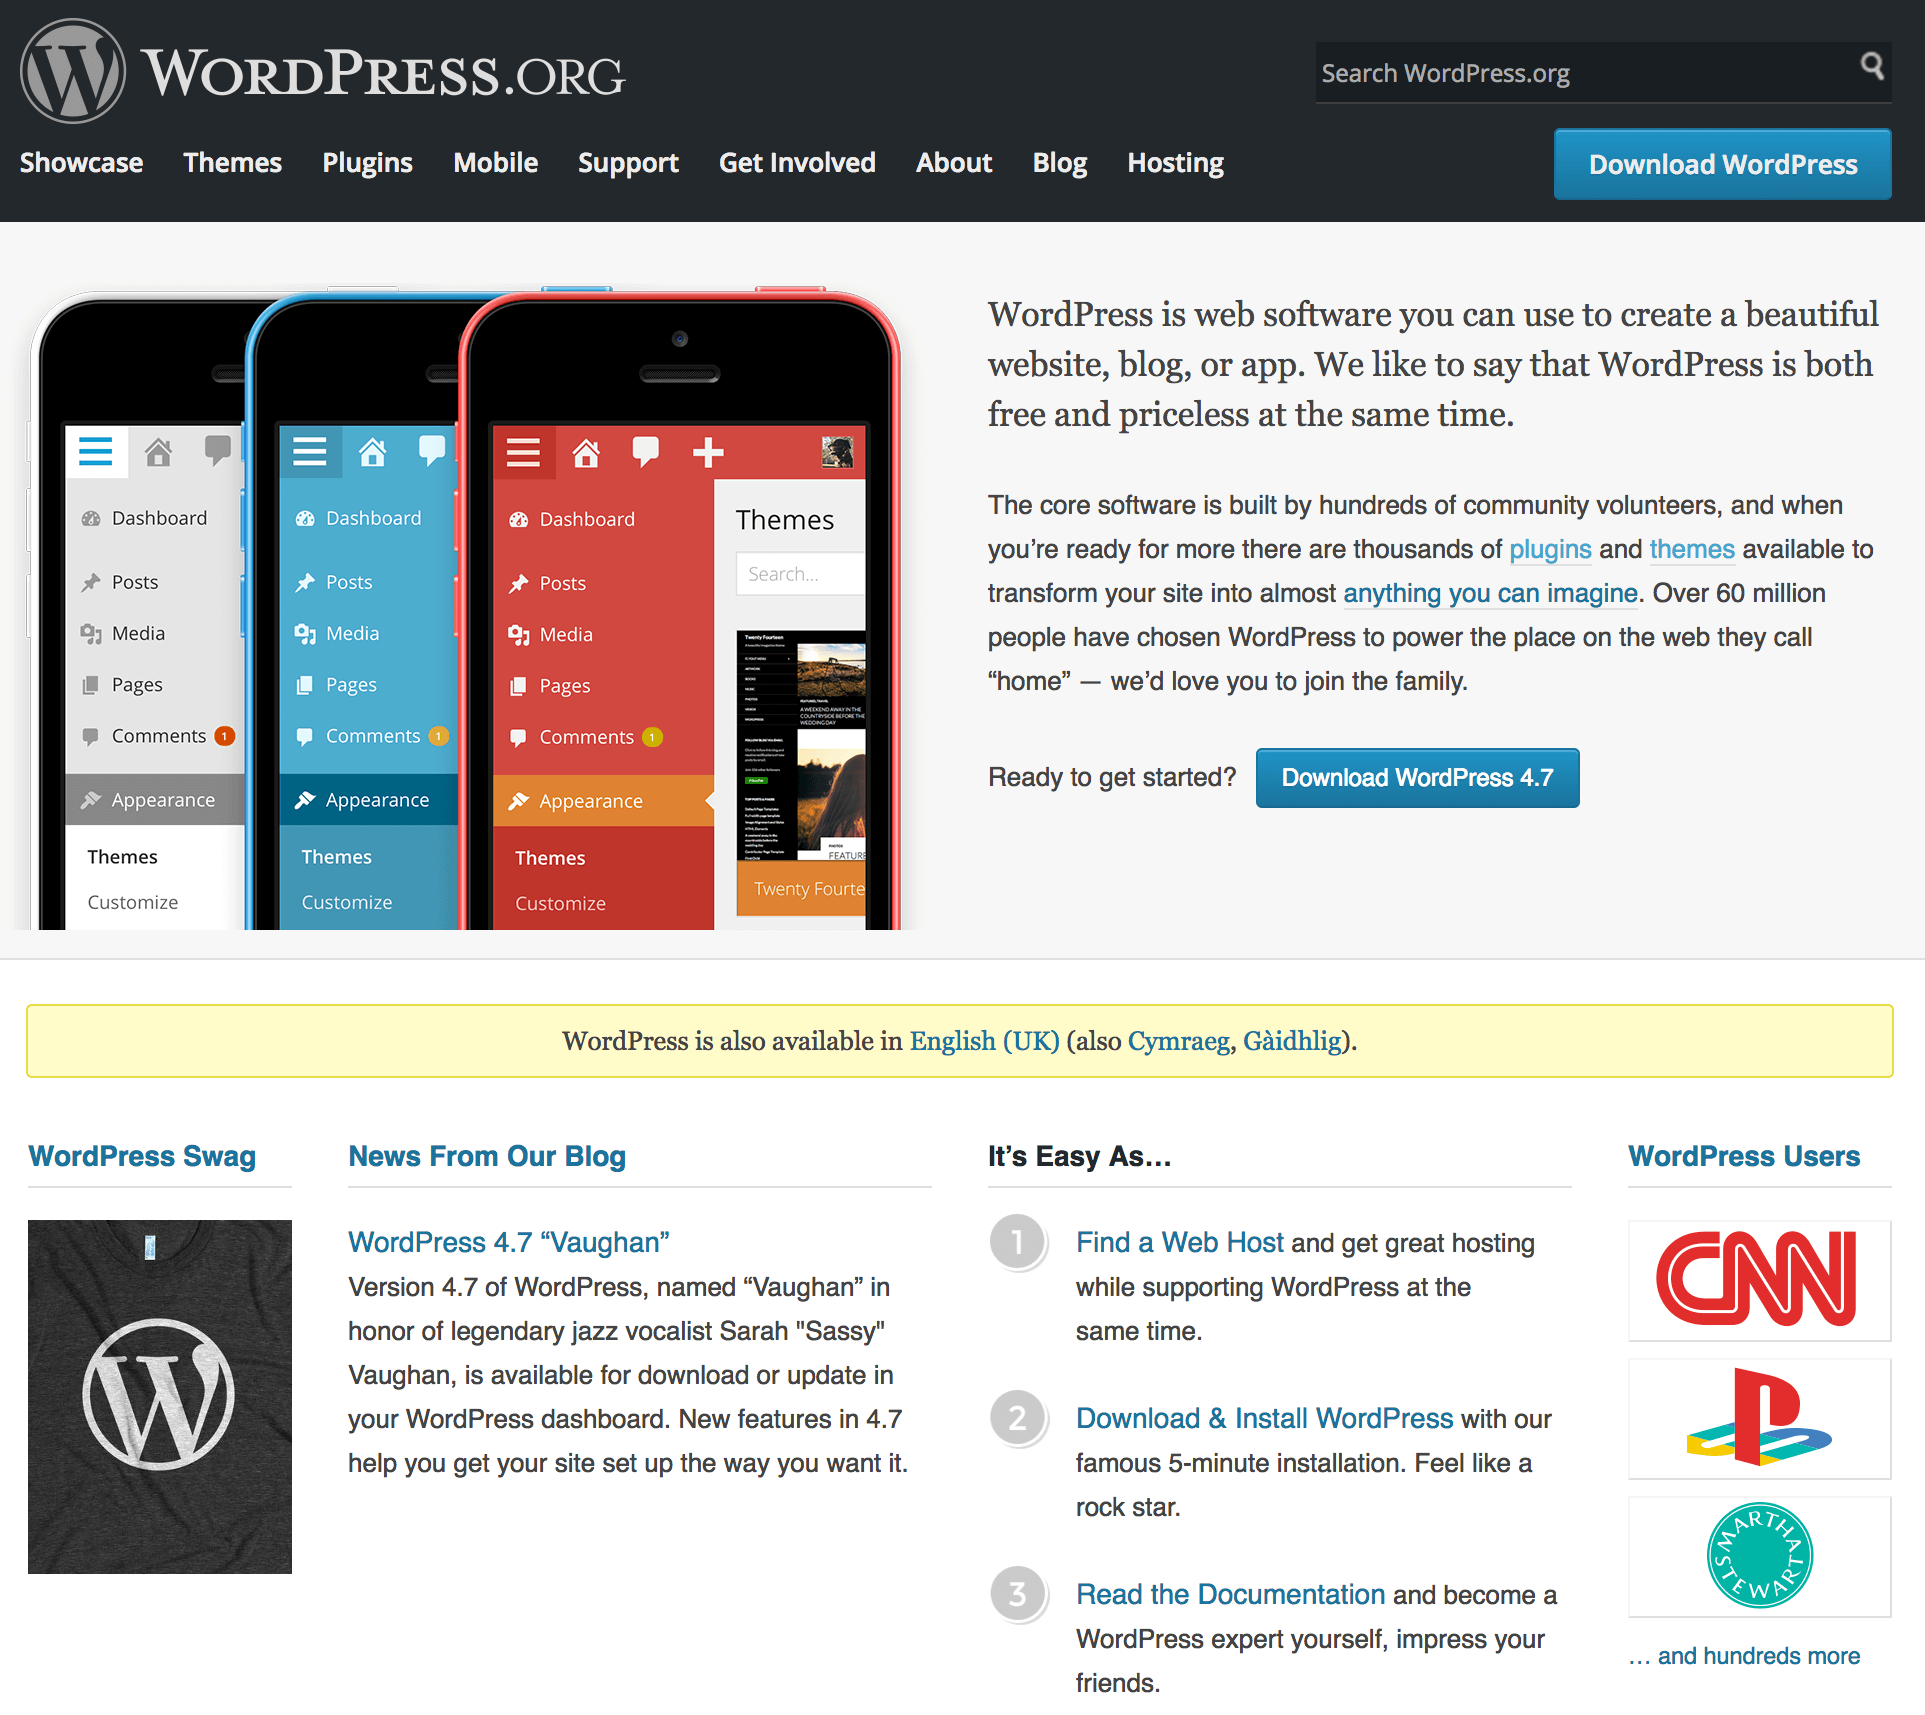 The WordPress.org home page.